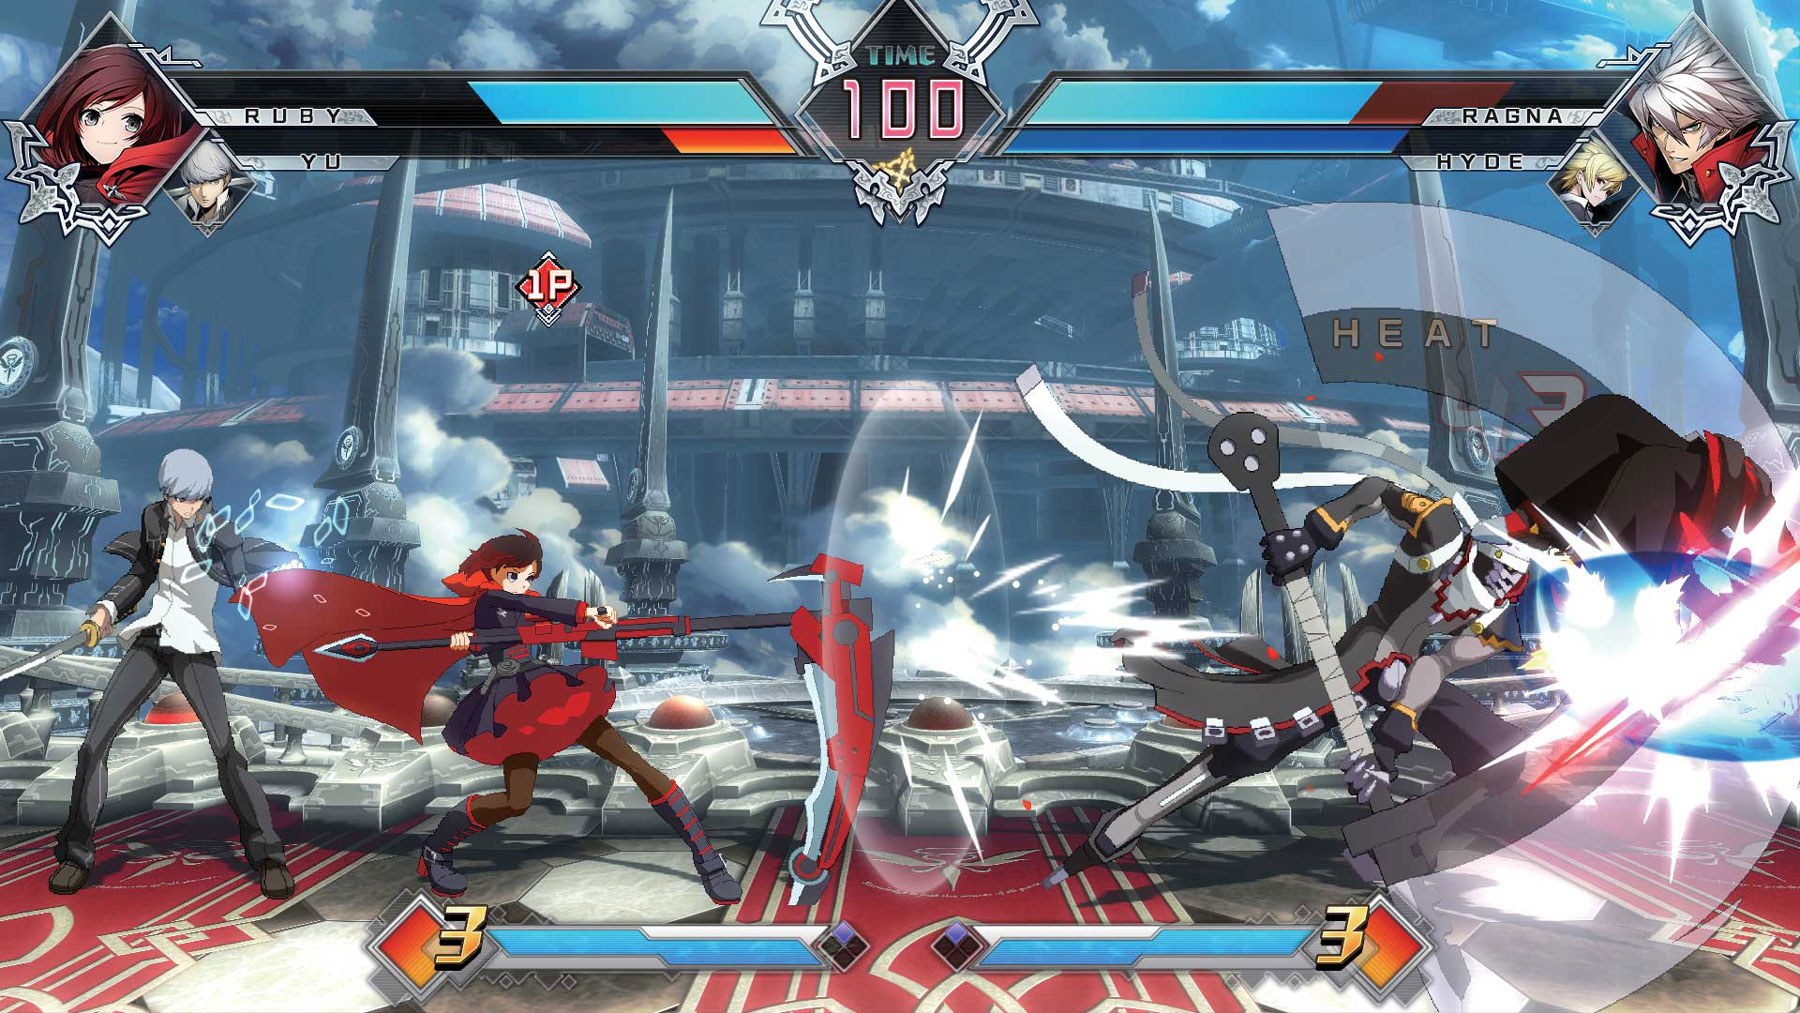 The latest 'BlazBlue' reminds me how impenetrable fighting games